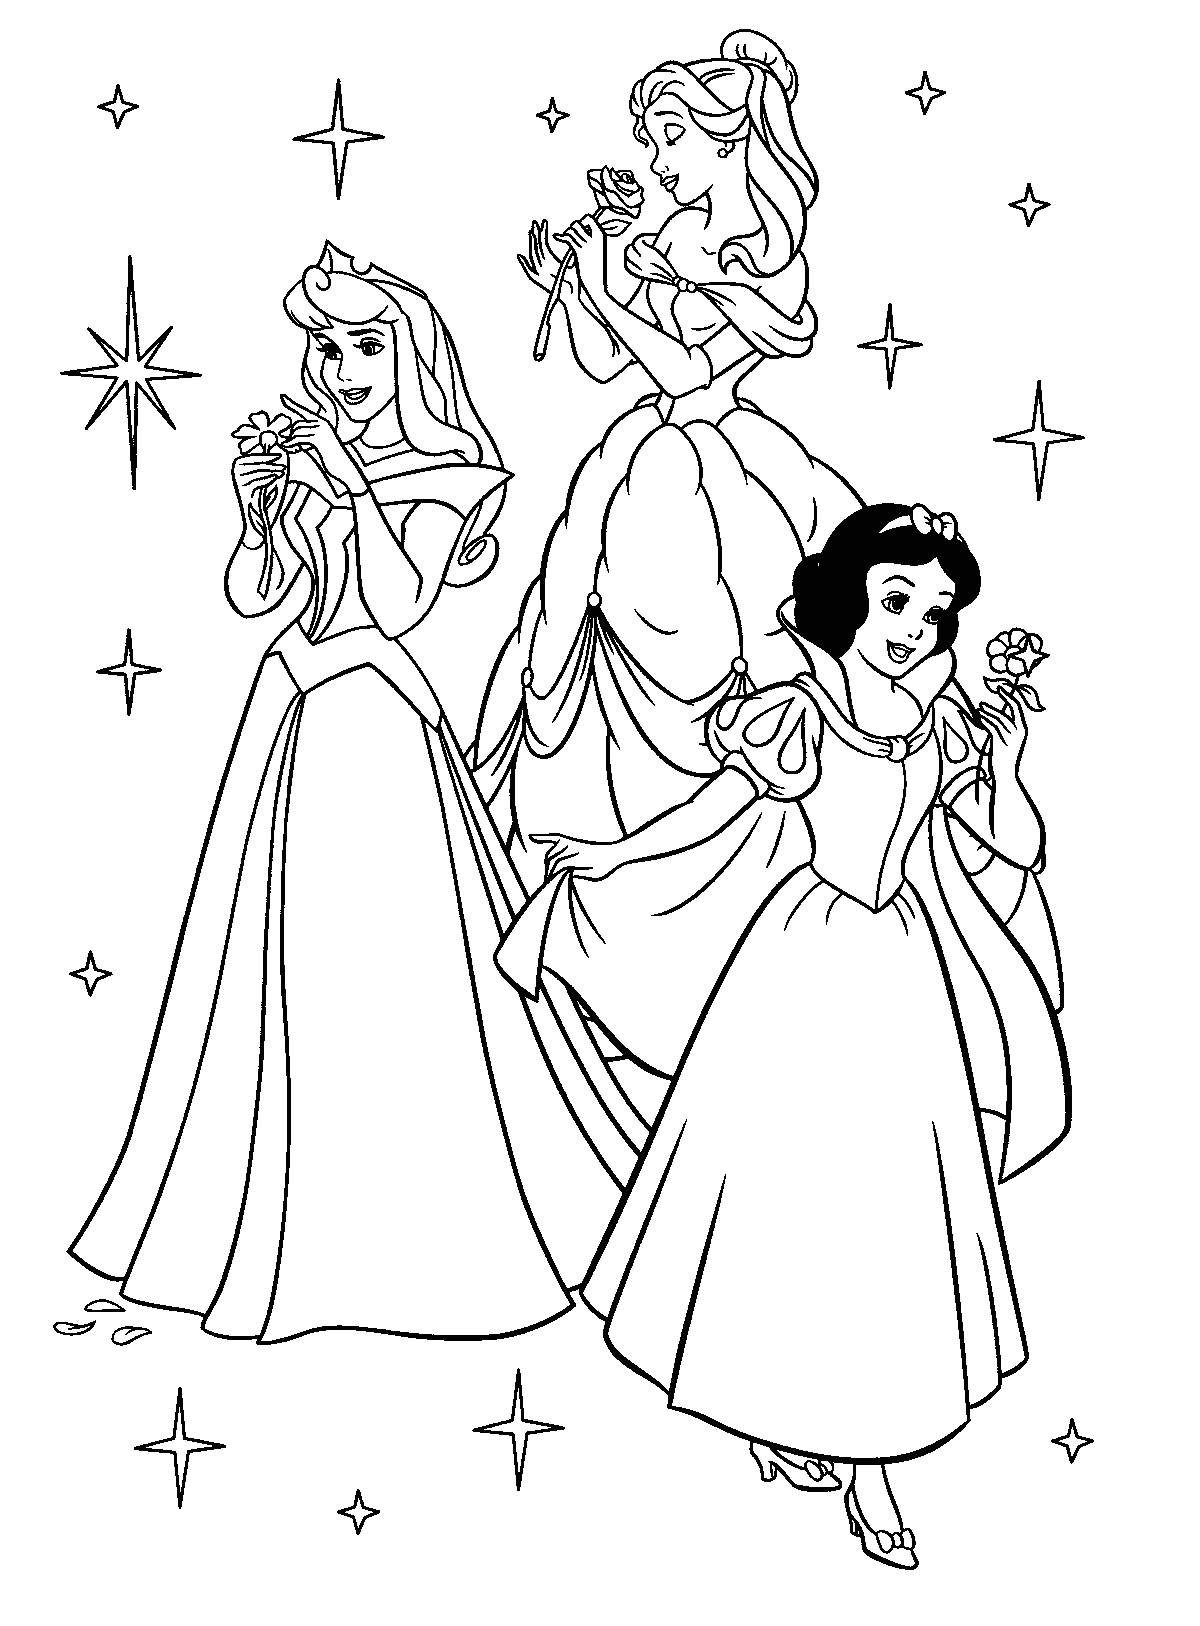 Disney Princess Coloring Pages to Print for Free Princess Coloring Pages Best Coloring Pages for Kids